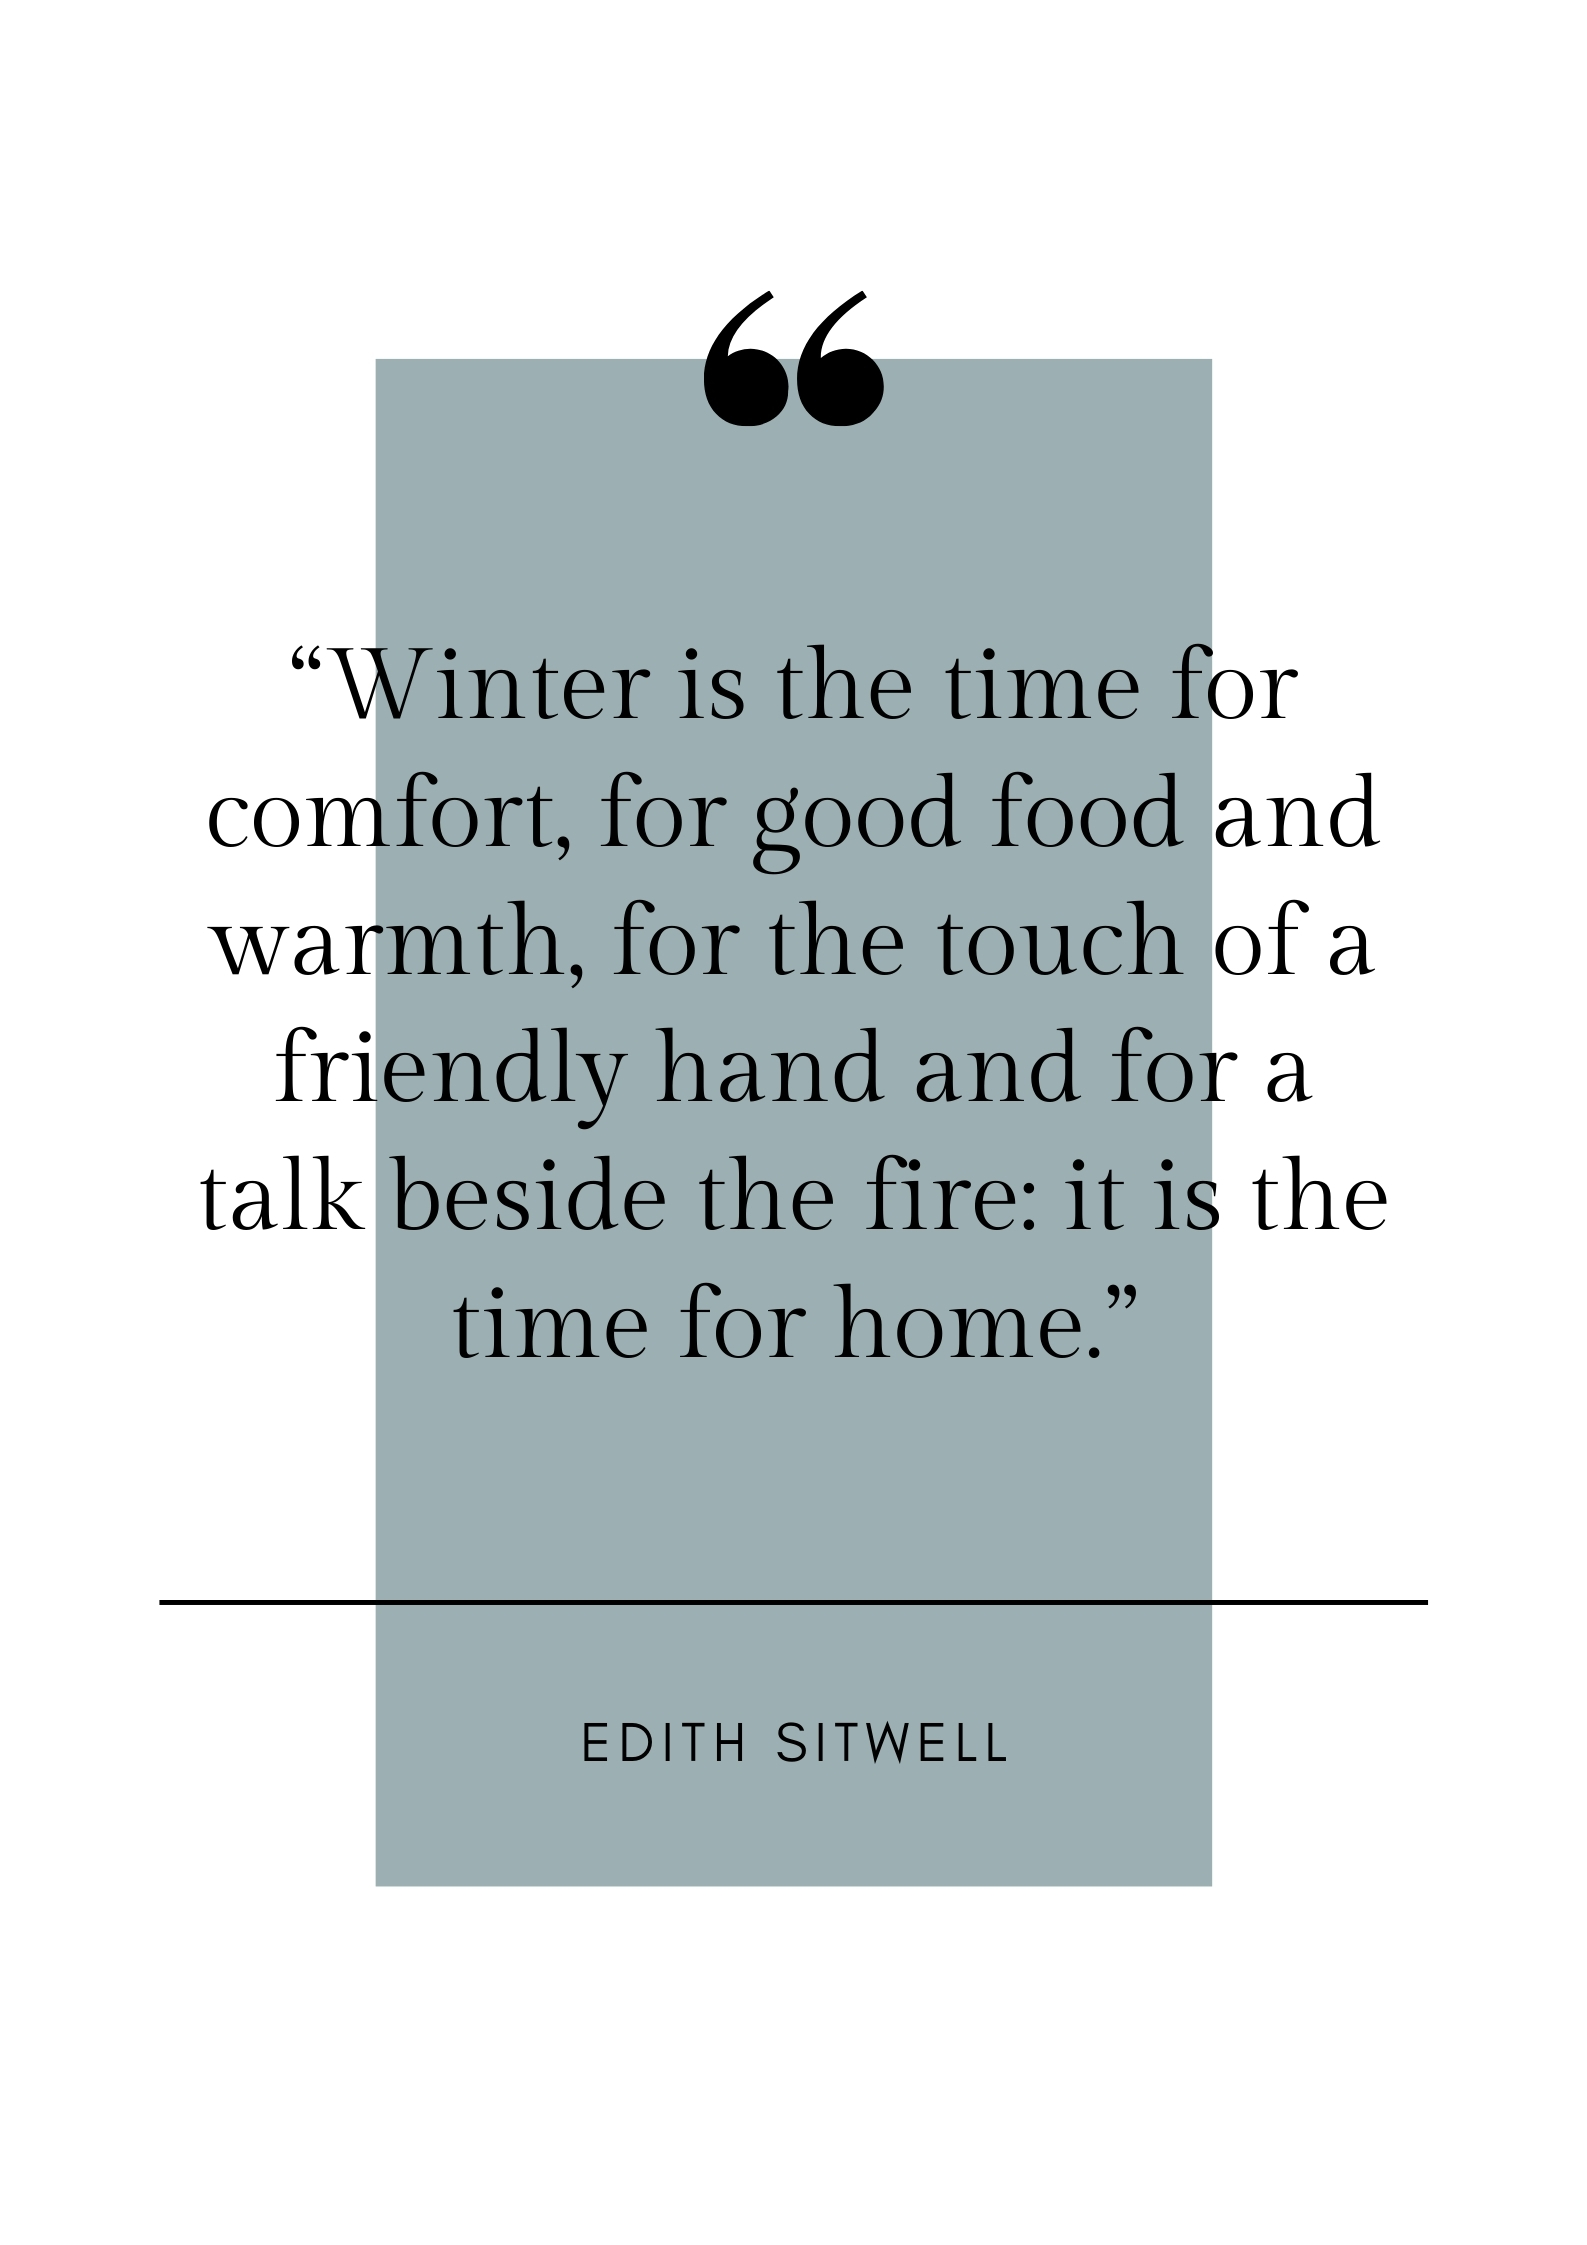 edith sitwell quote